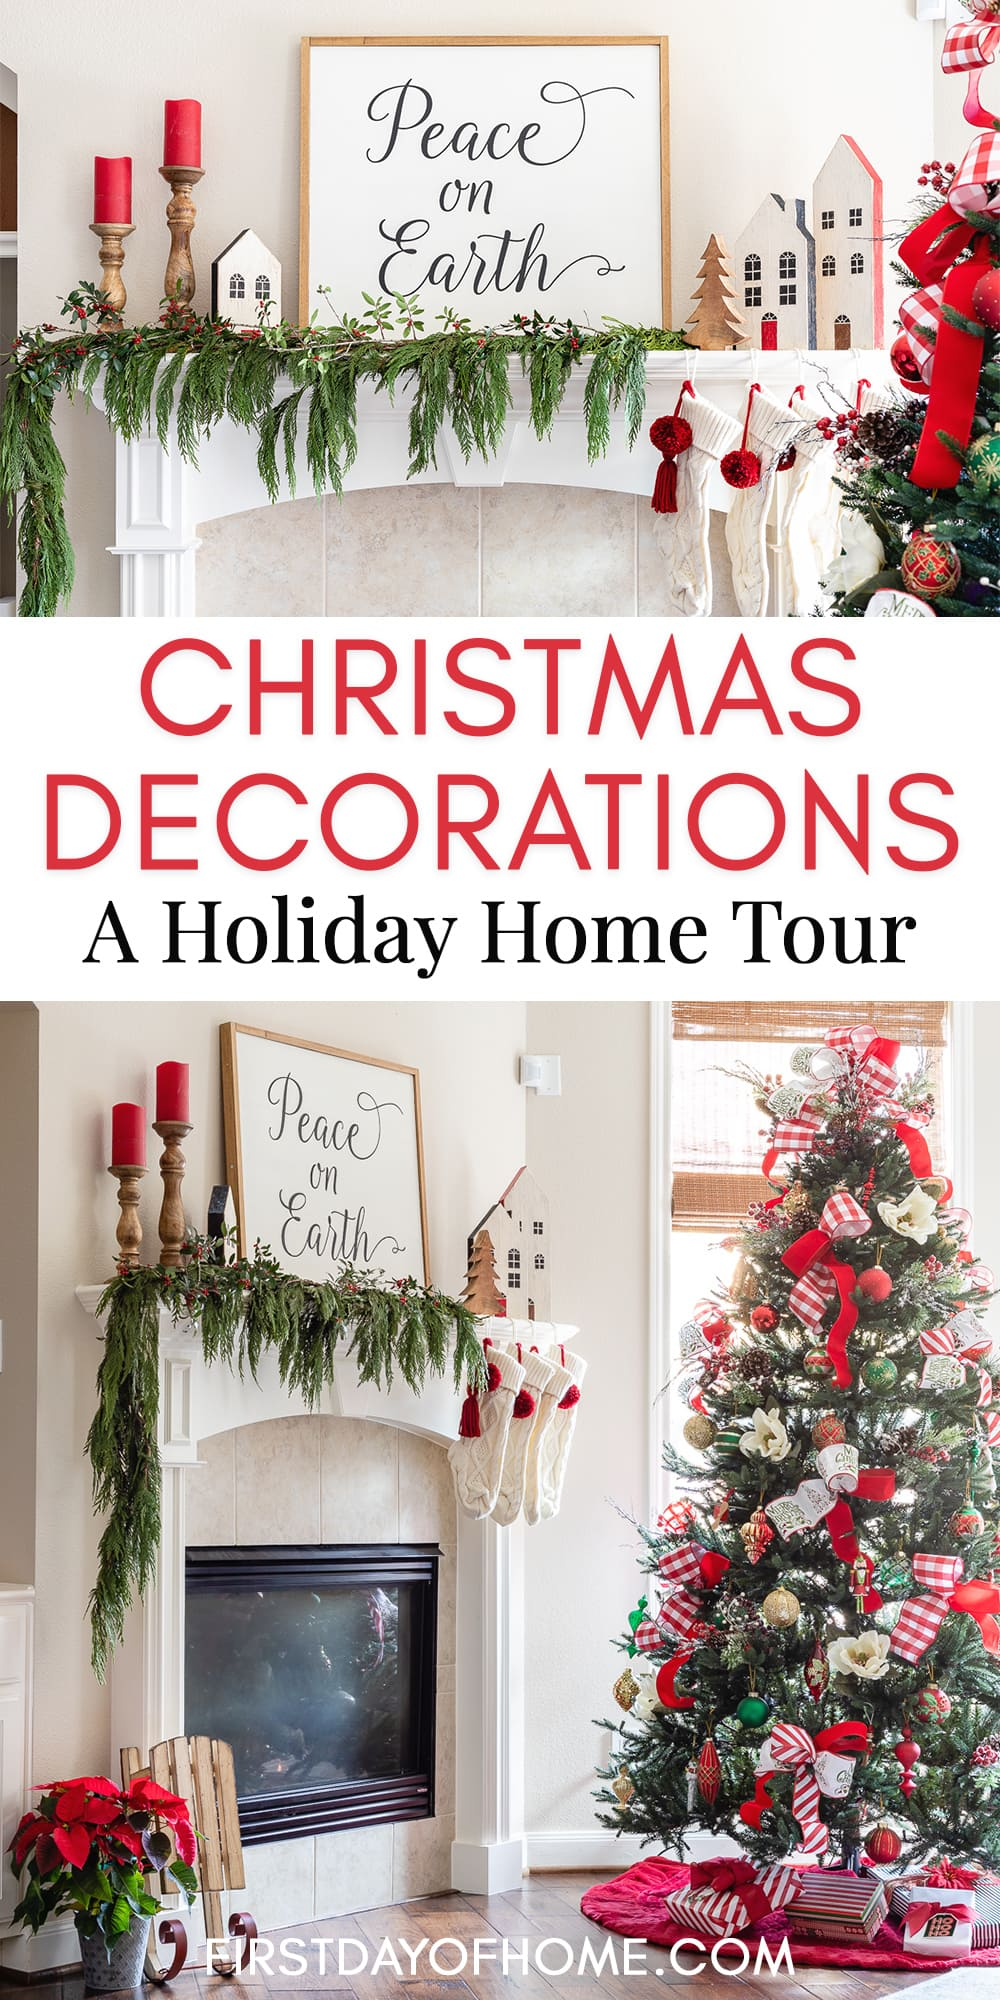 "Pinterest pin showing Christmas living room with red and green accents, including real cedar garland, candles, farmhouse sign and coffee table accents for Christmas and text reading ""Christmas Decorations: A Holiday Home Tour"""